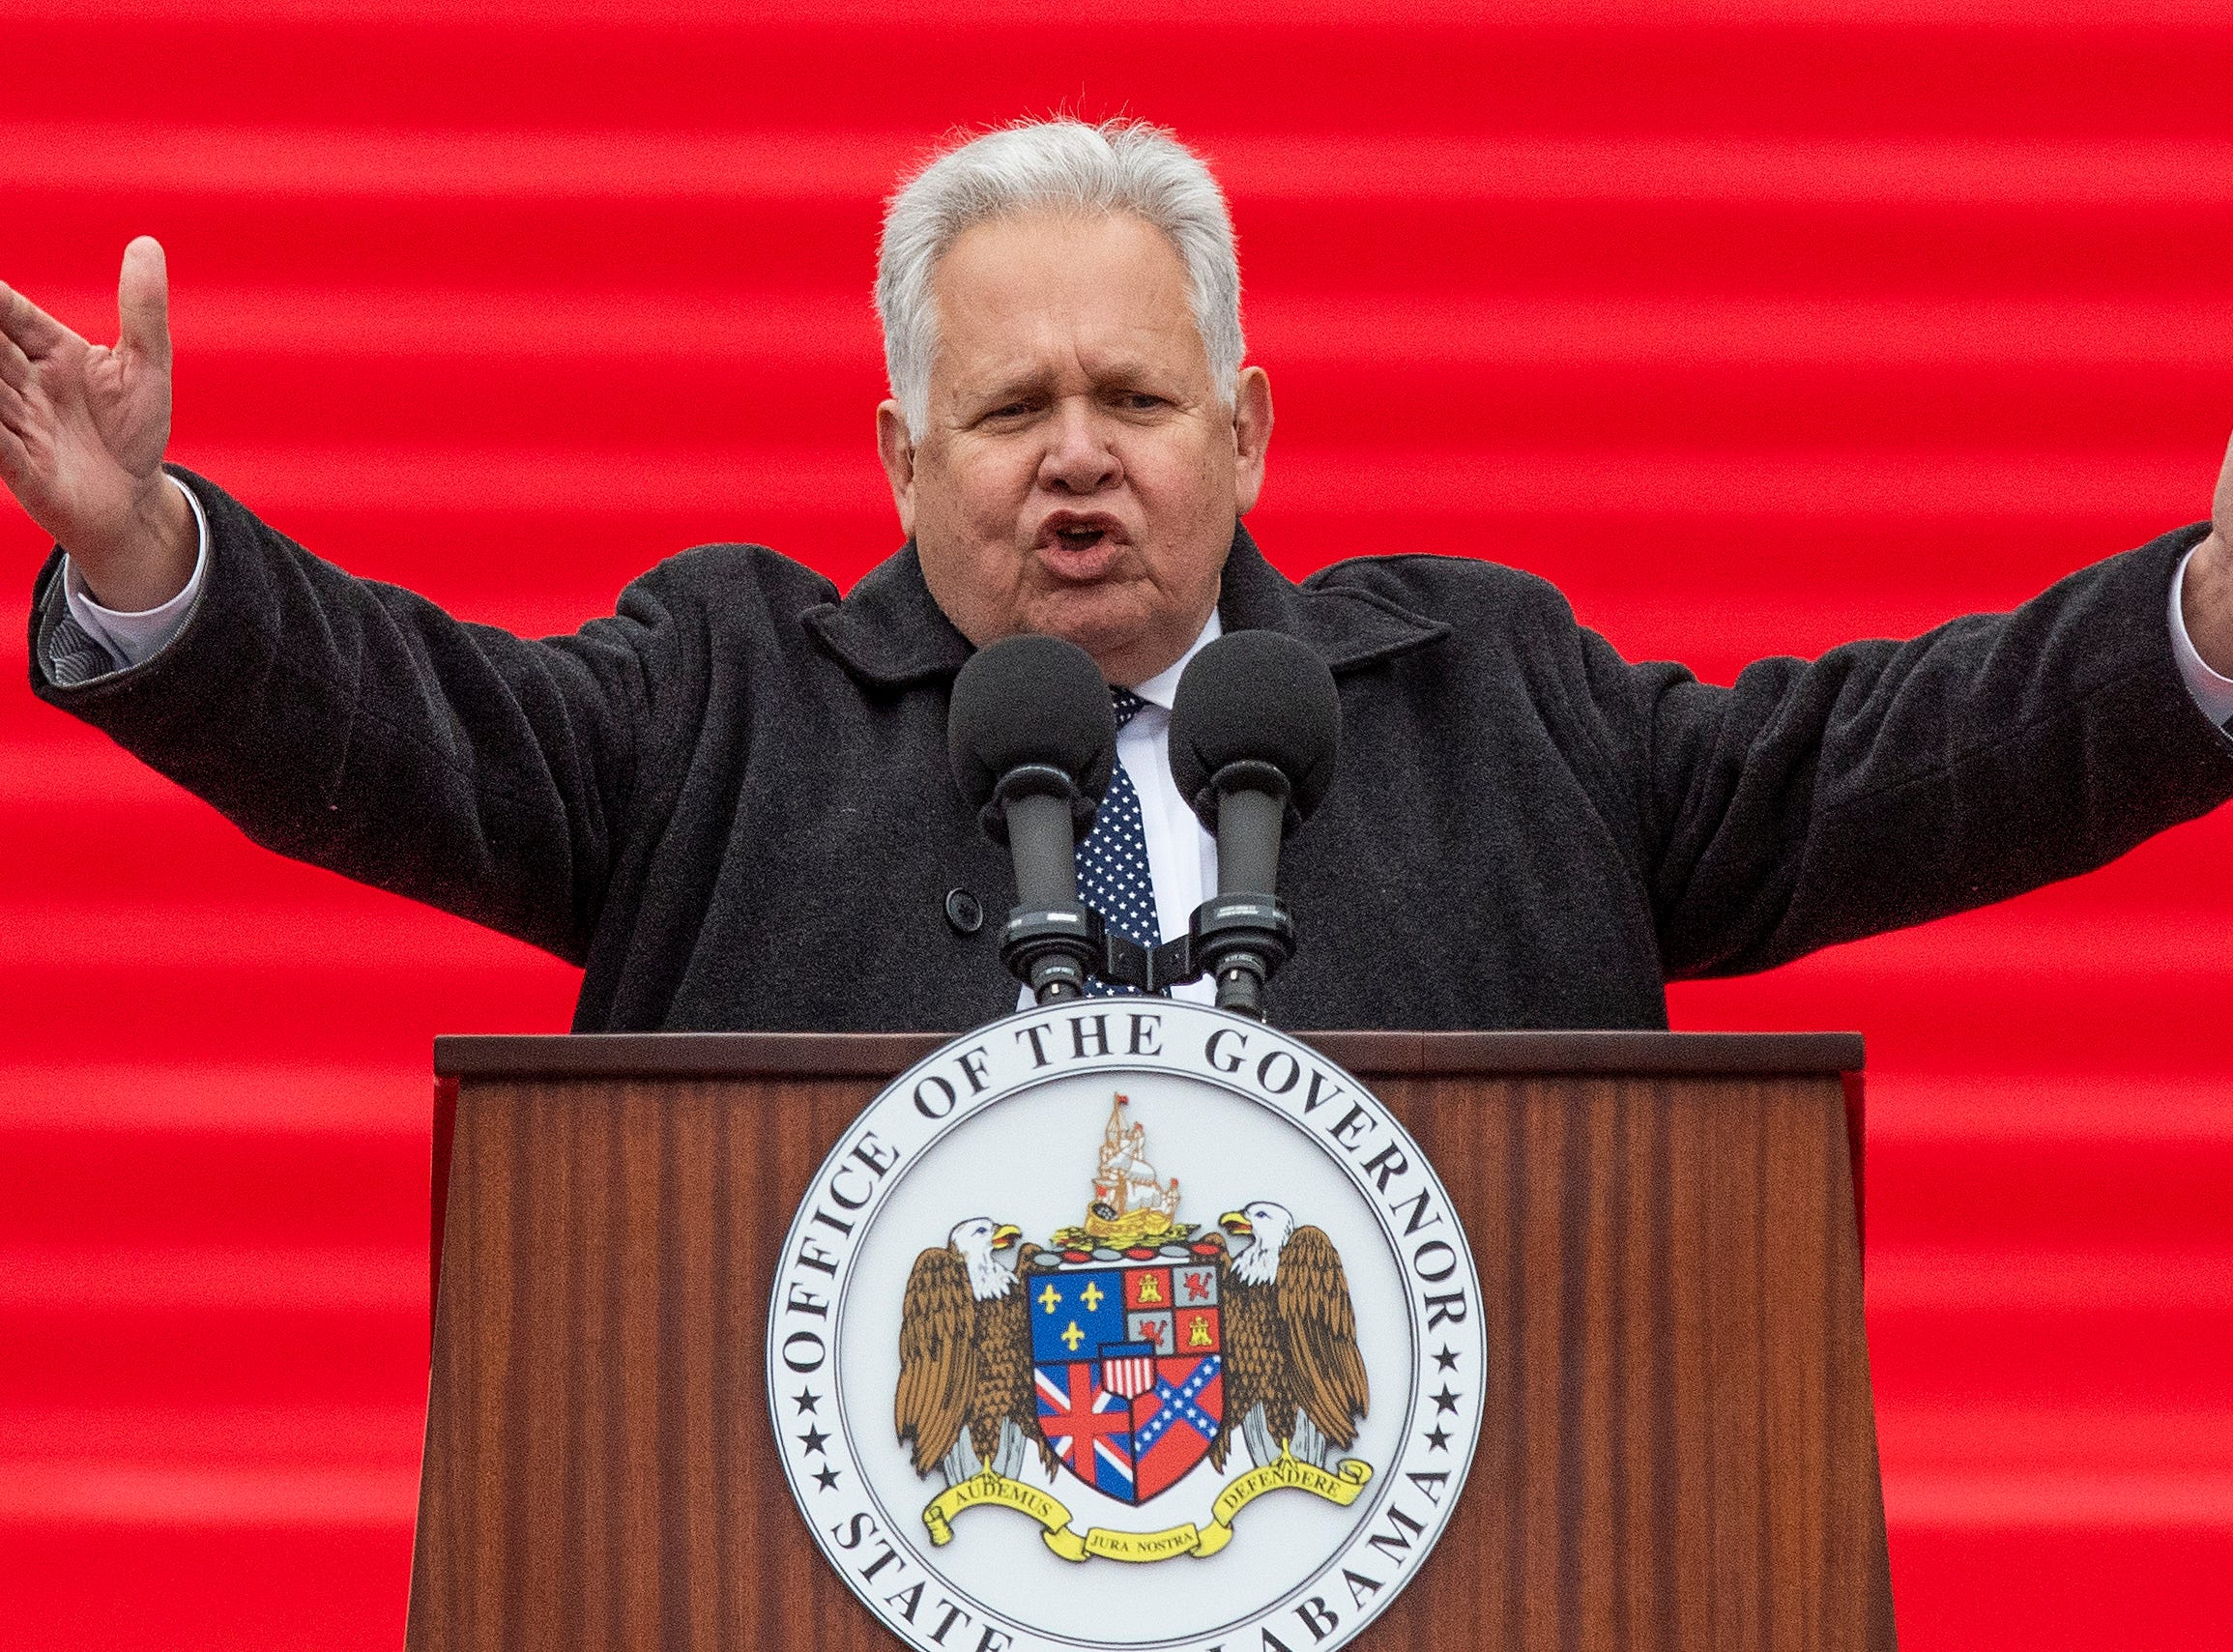 State Auditor Jim Zeigler speaks after being sworn in during the Inauguration of Governor Kay Ivey on the state capitol steps in Montgomery, Ala., on Monday January 14, 2019.